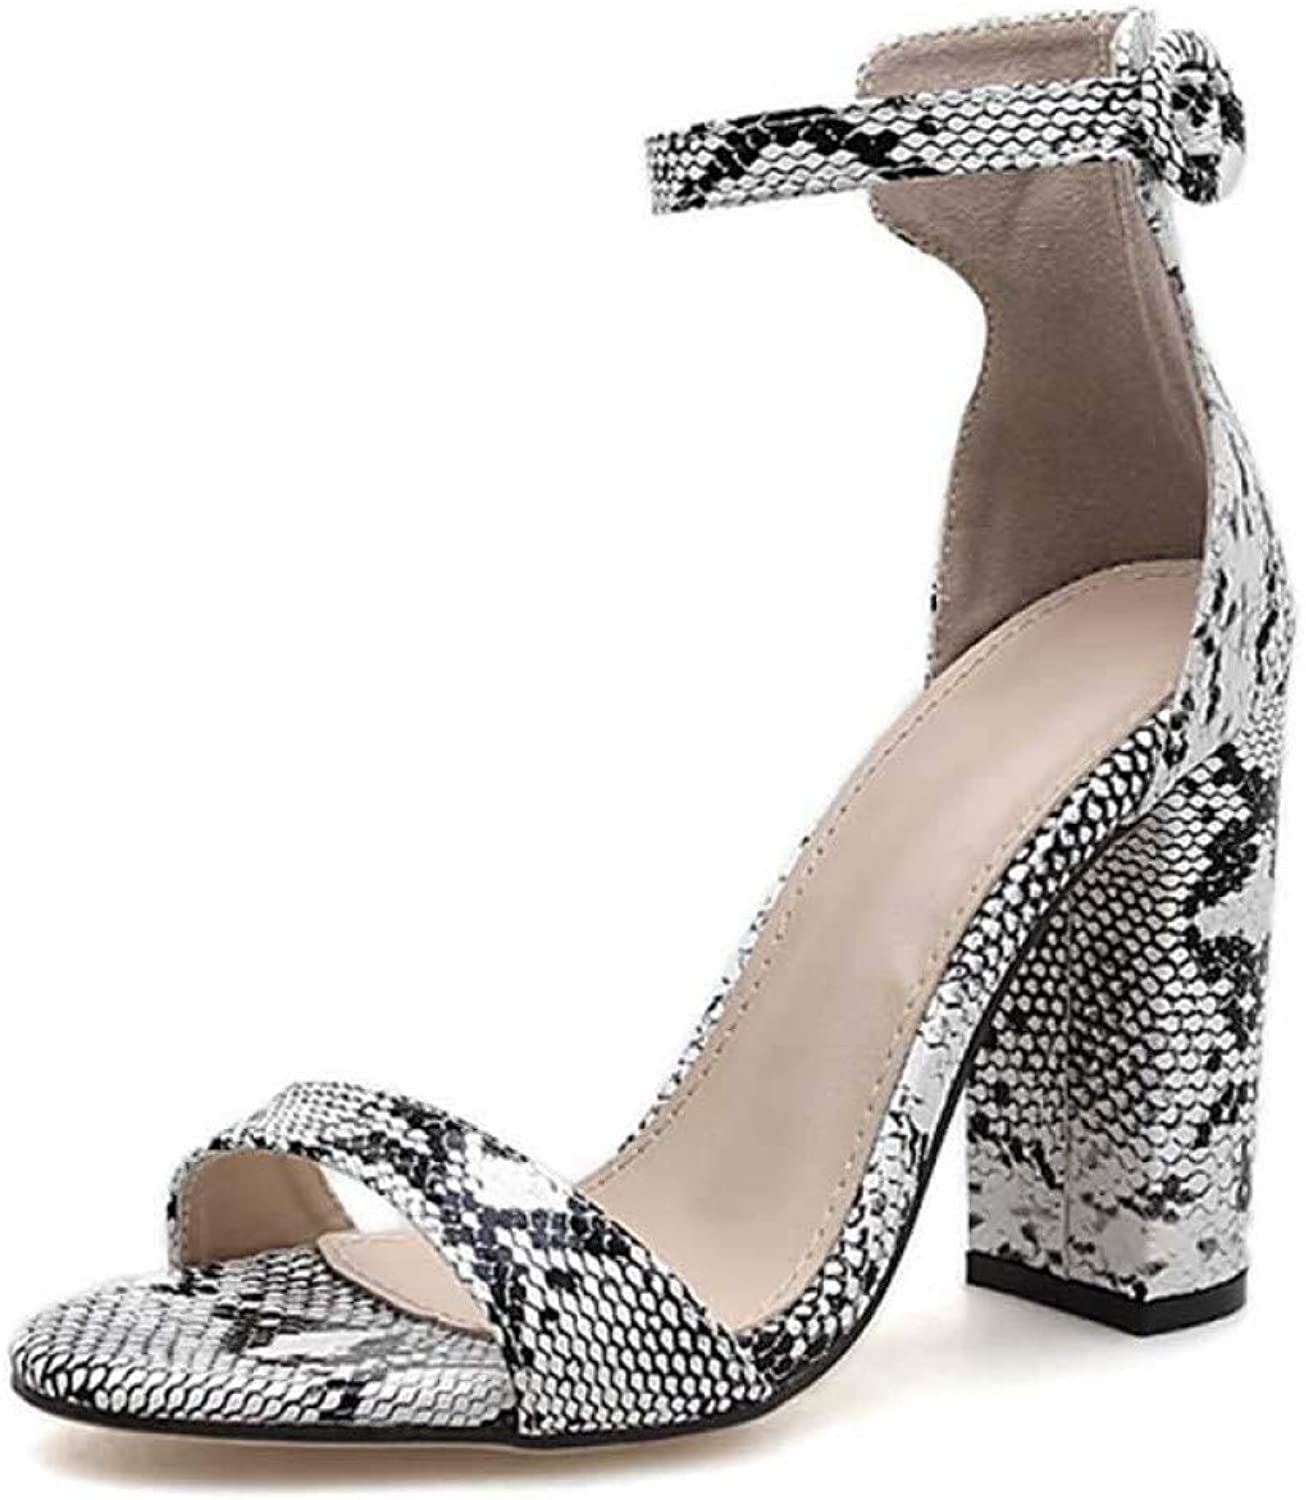 Womens Snake Print Square Heel Sandals Fashion Ankle Strap Open Toe Ladies Sexy Party shoes